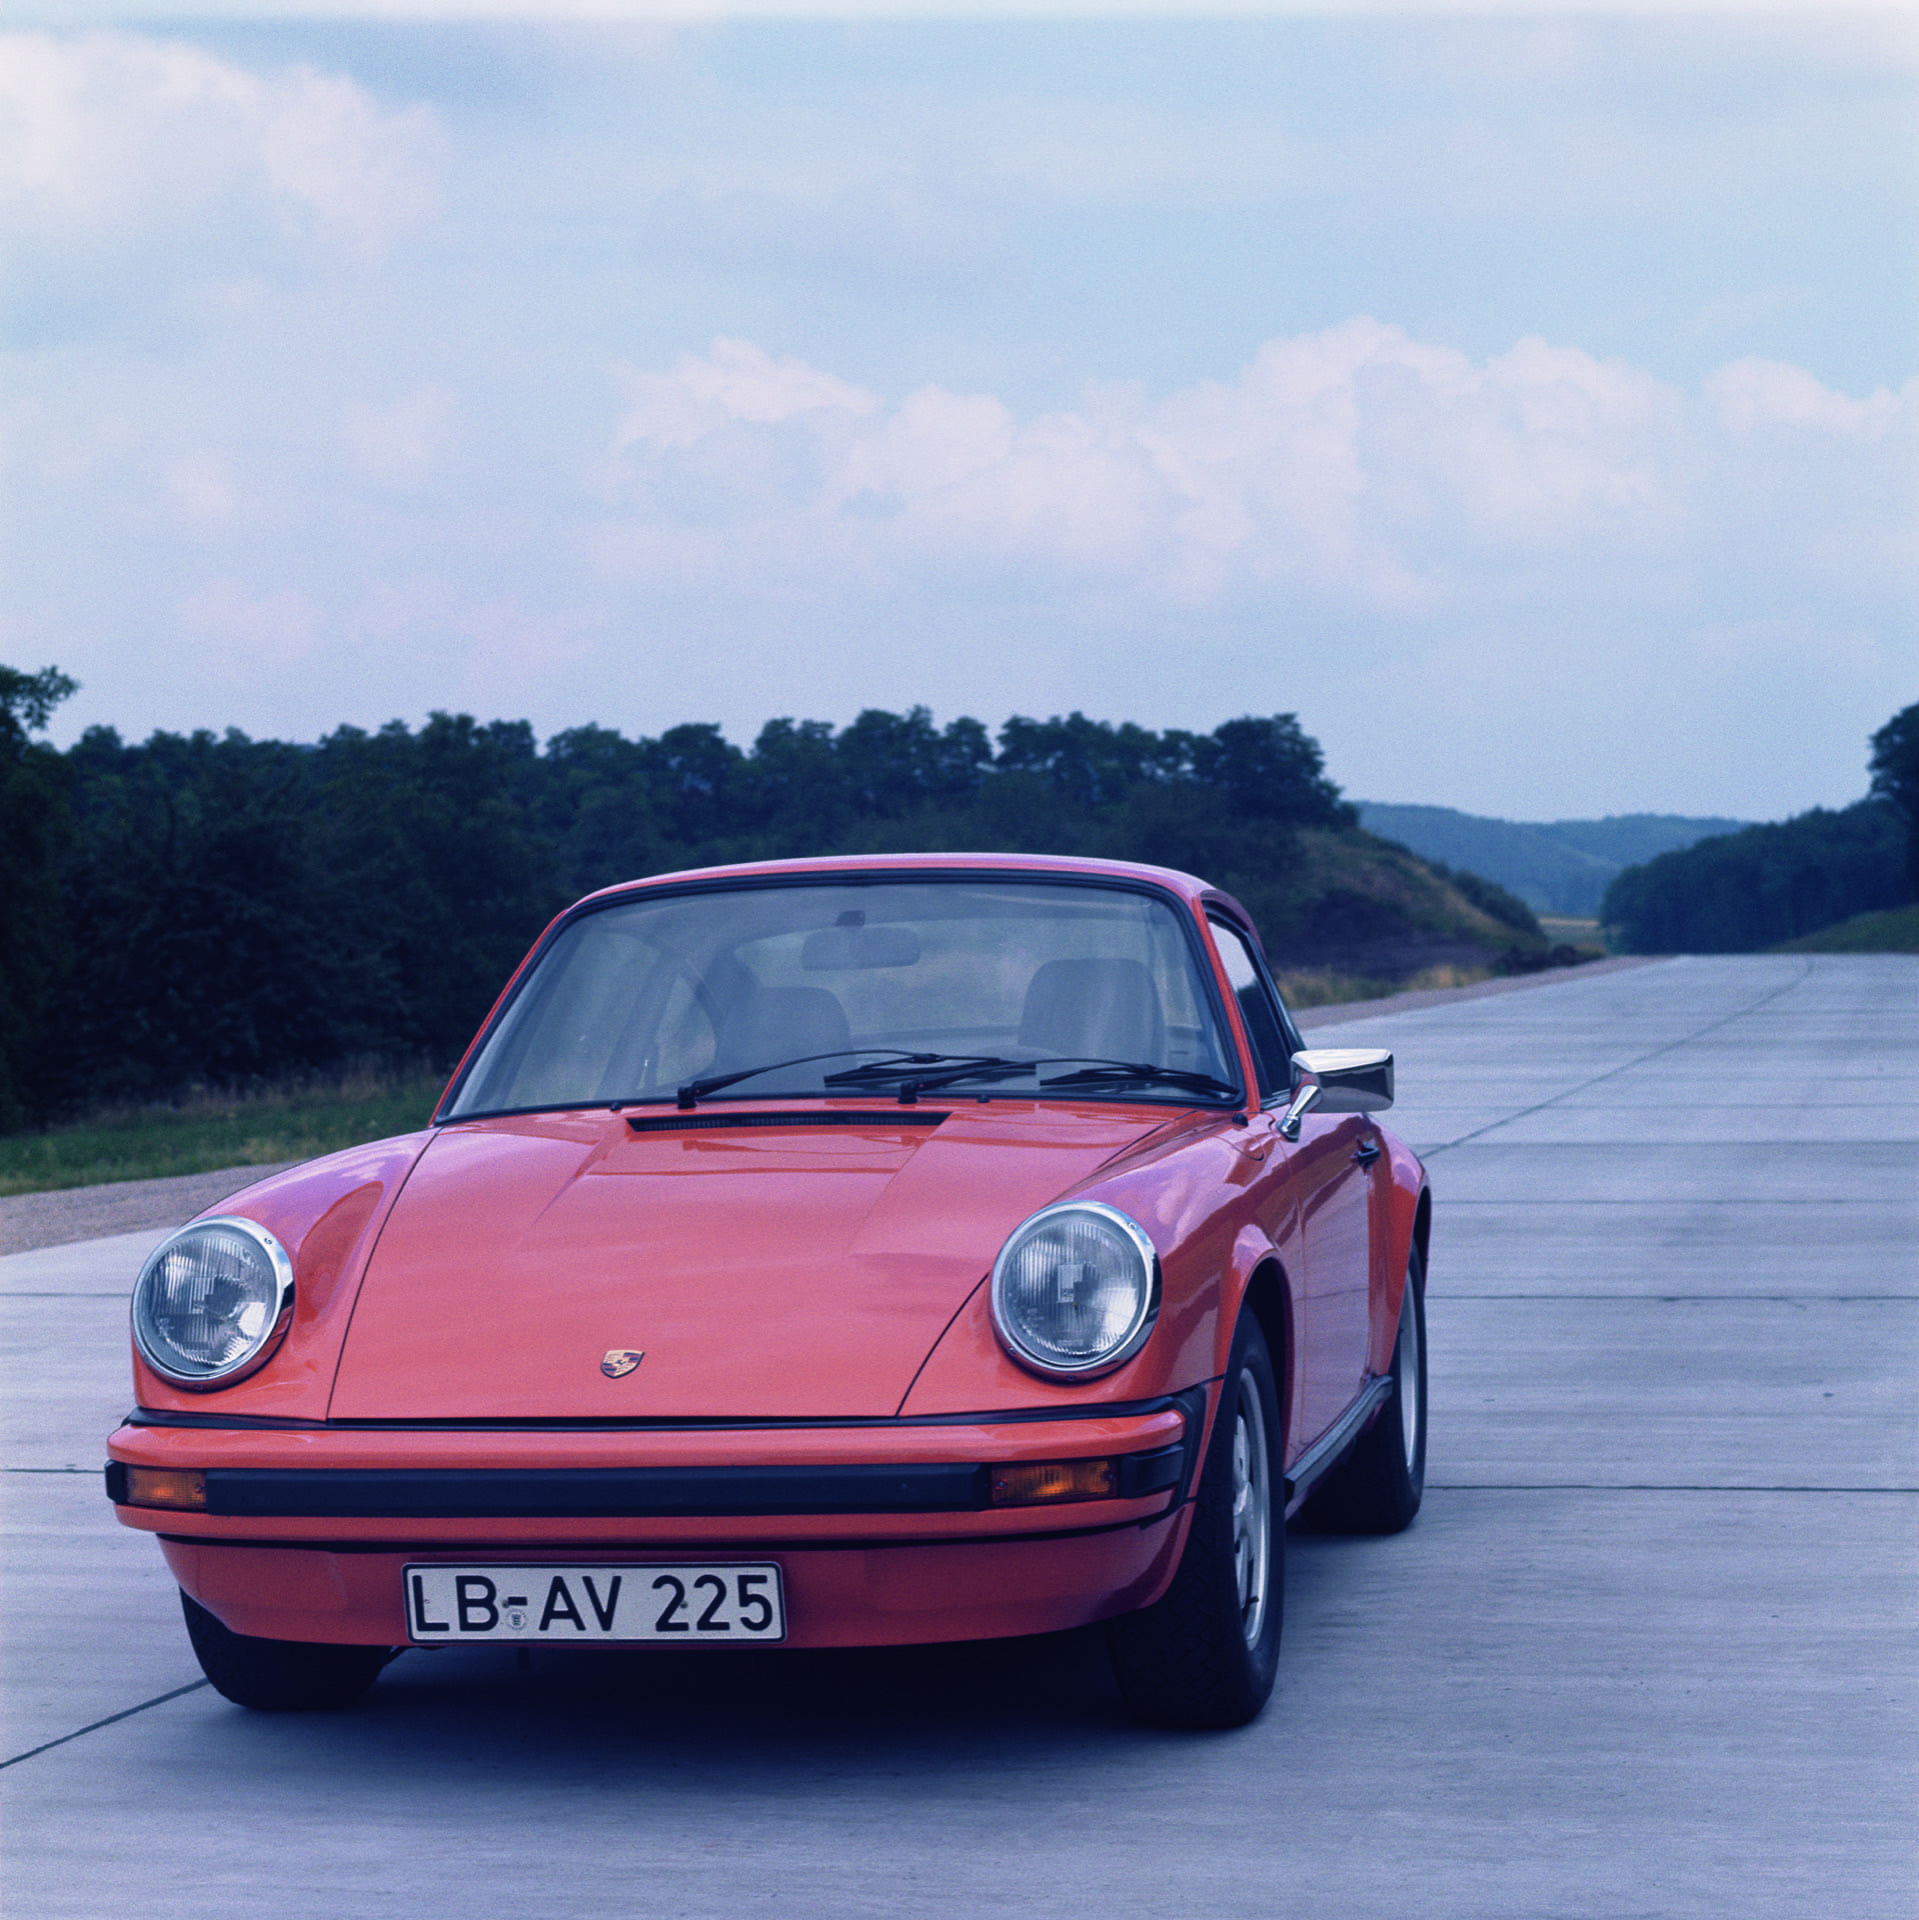 Porsche 911 G Carrera 2 7 Coupe 1974